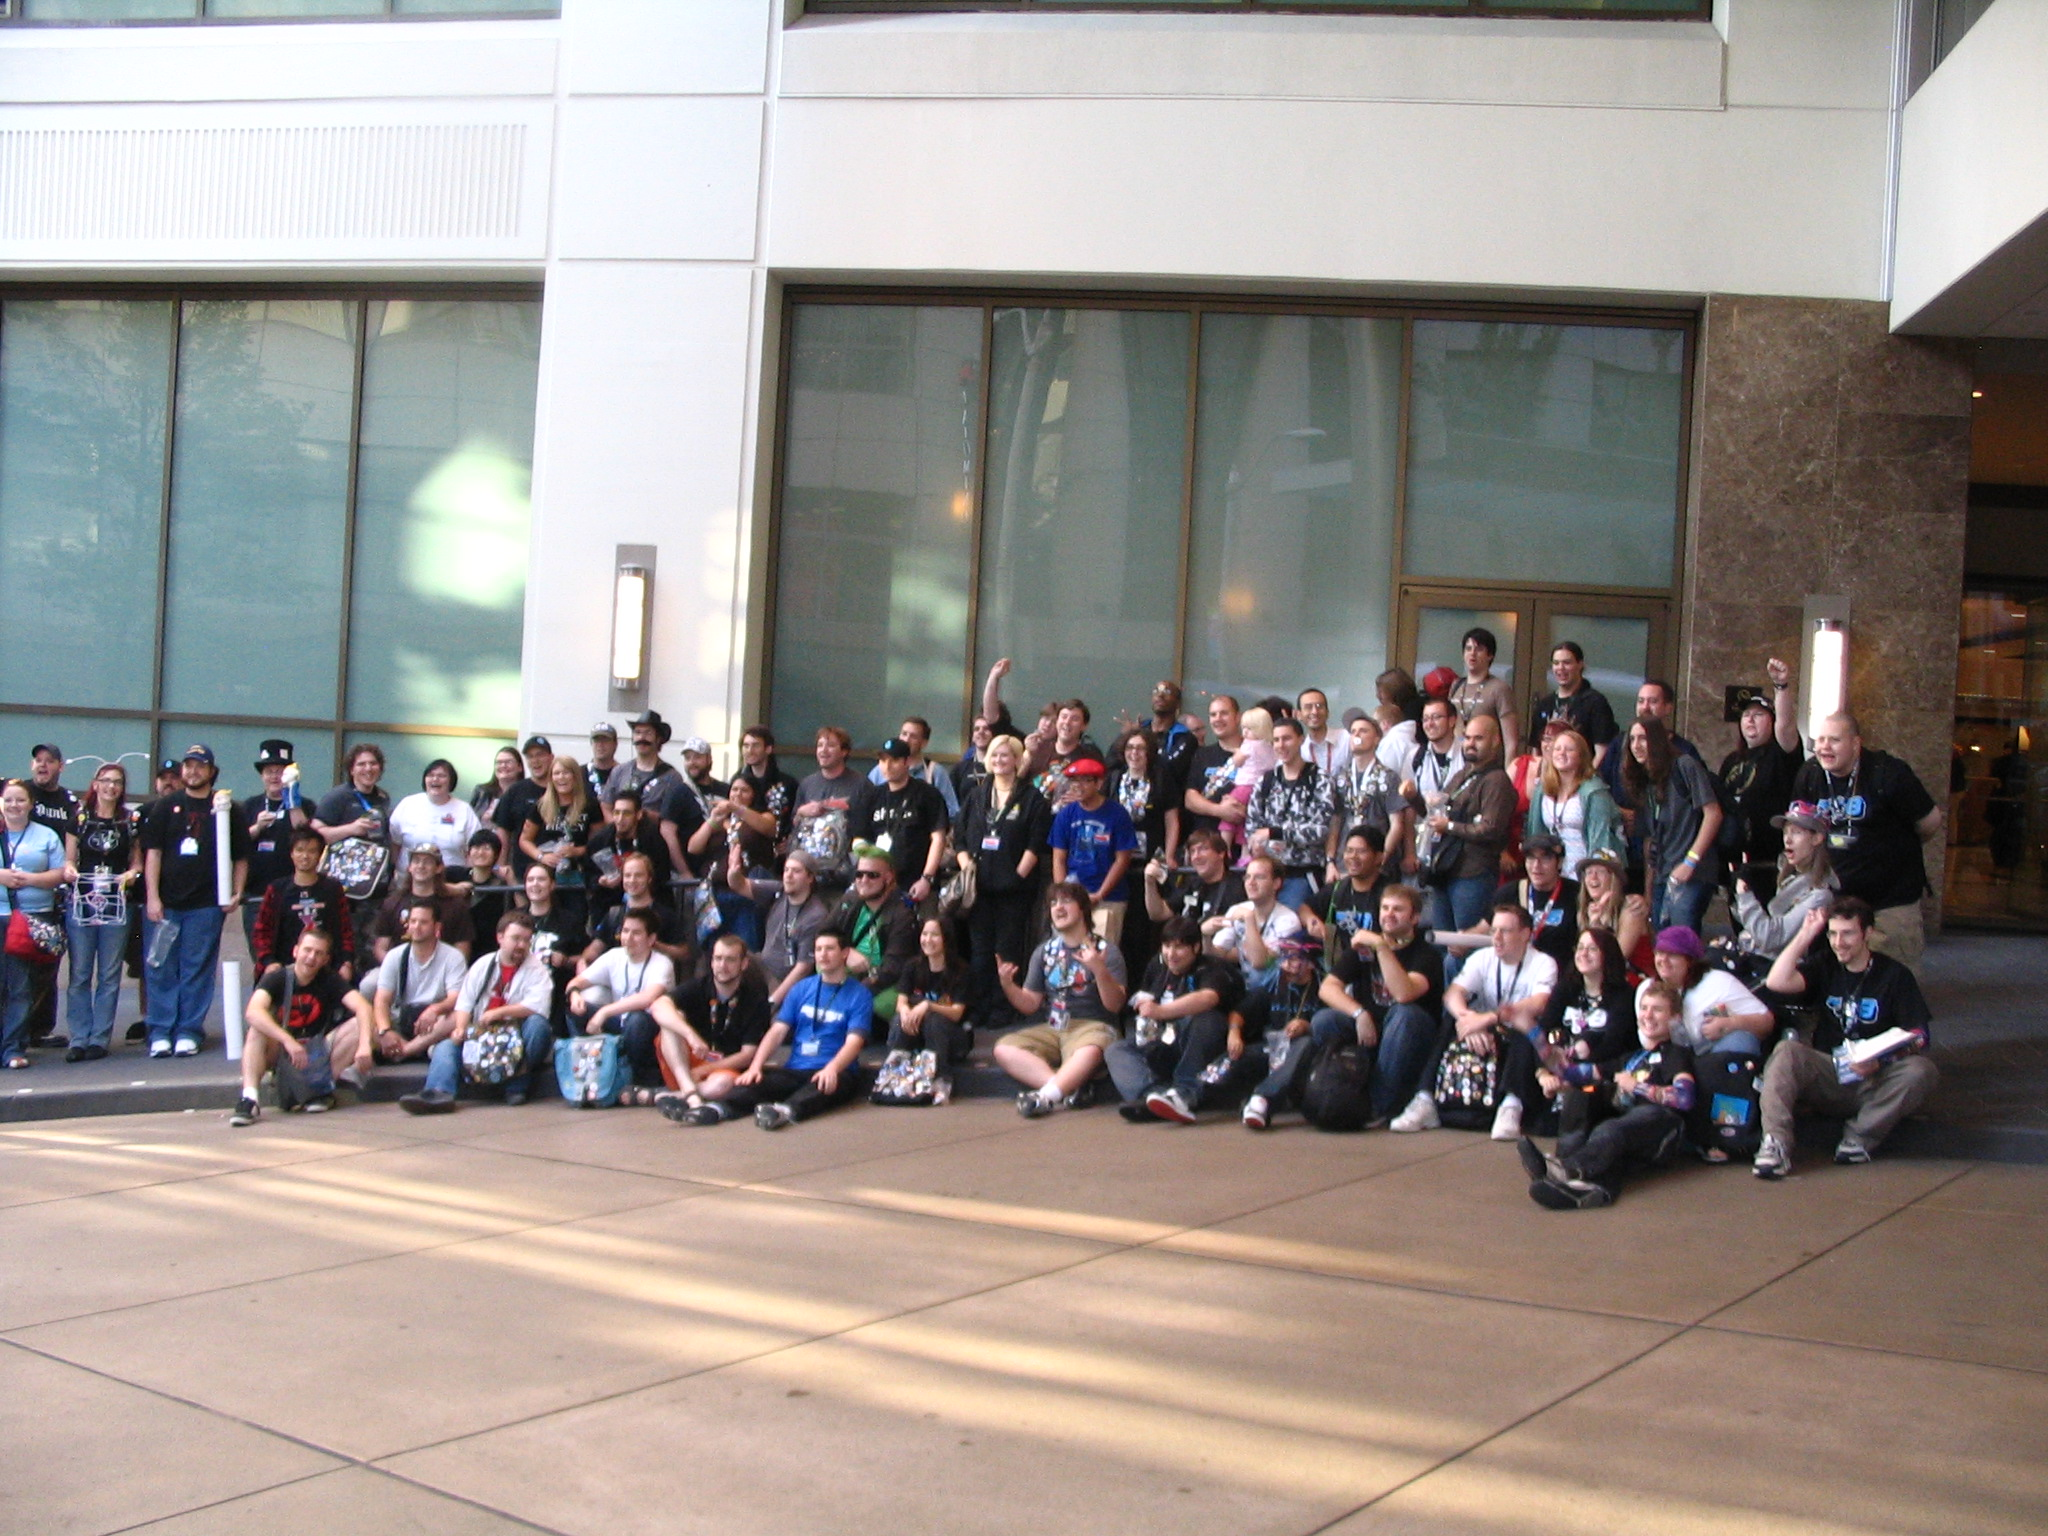 PAX '08 Buttoneers group shot